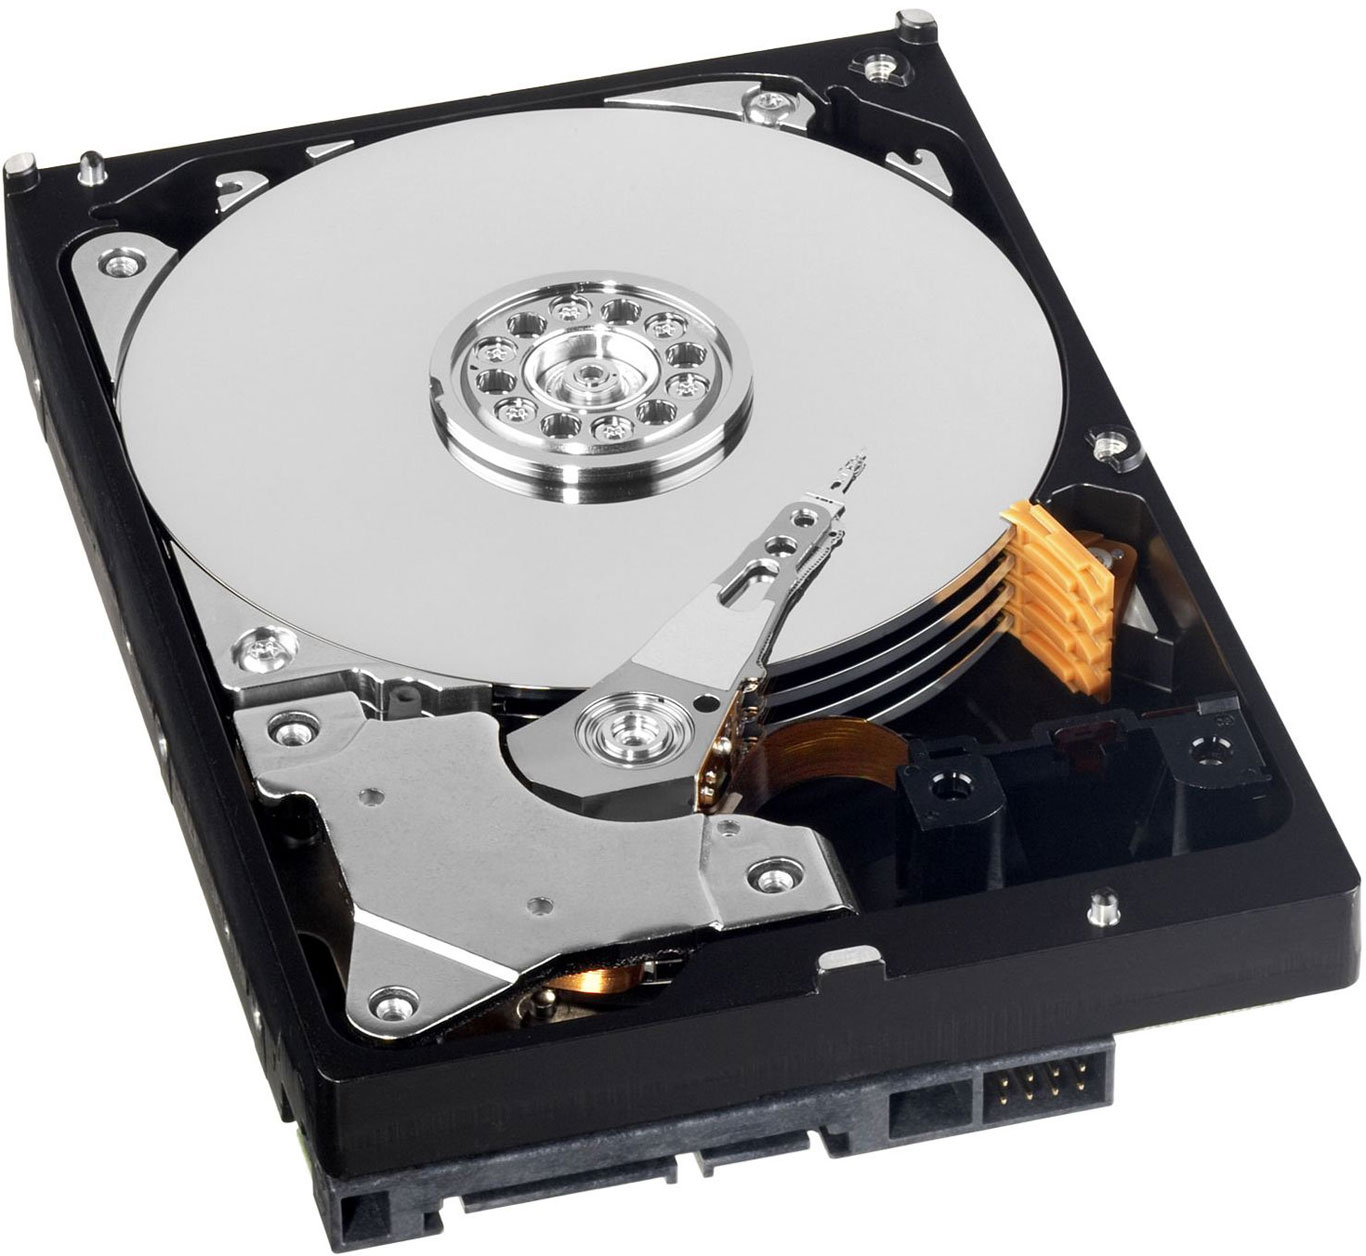 PC Sata 250GB HDD